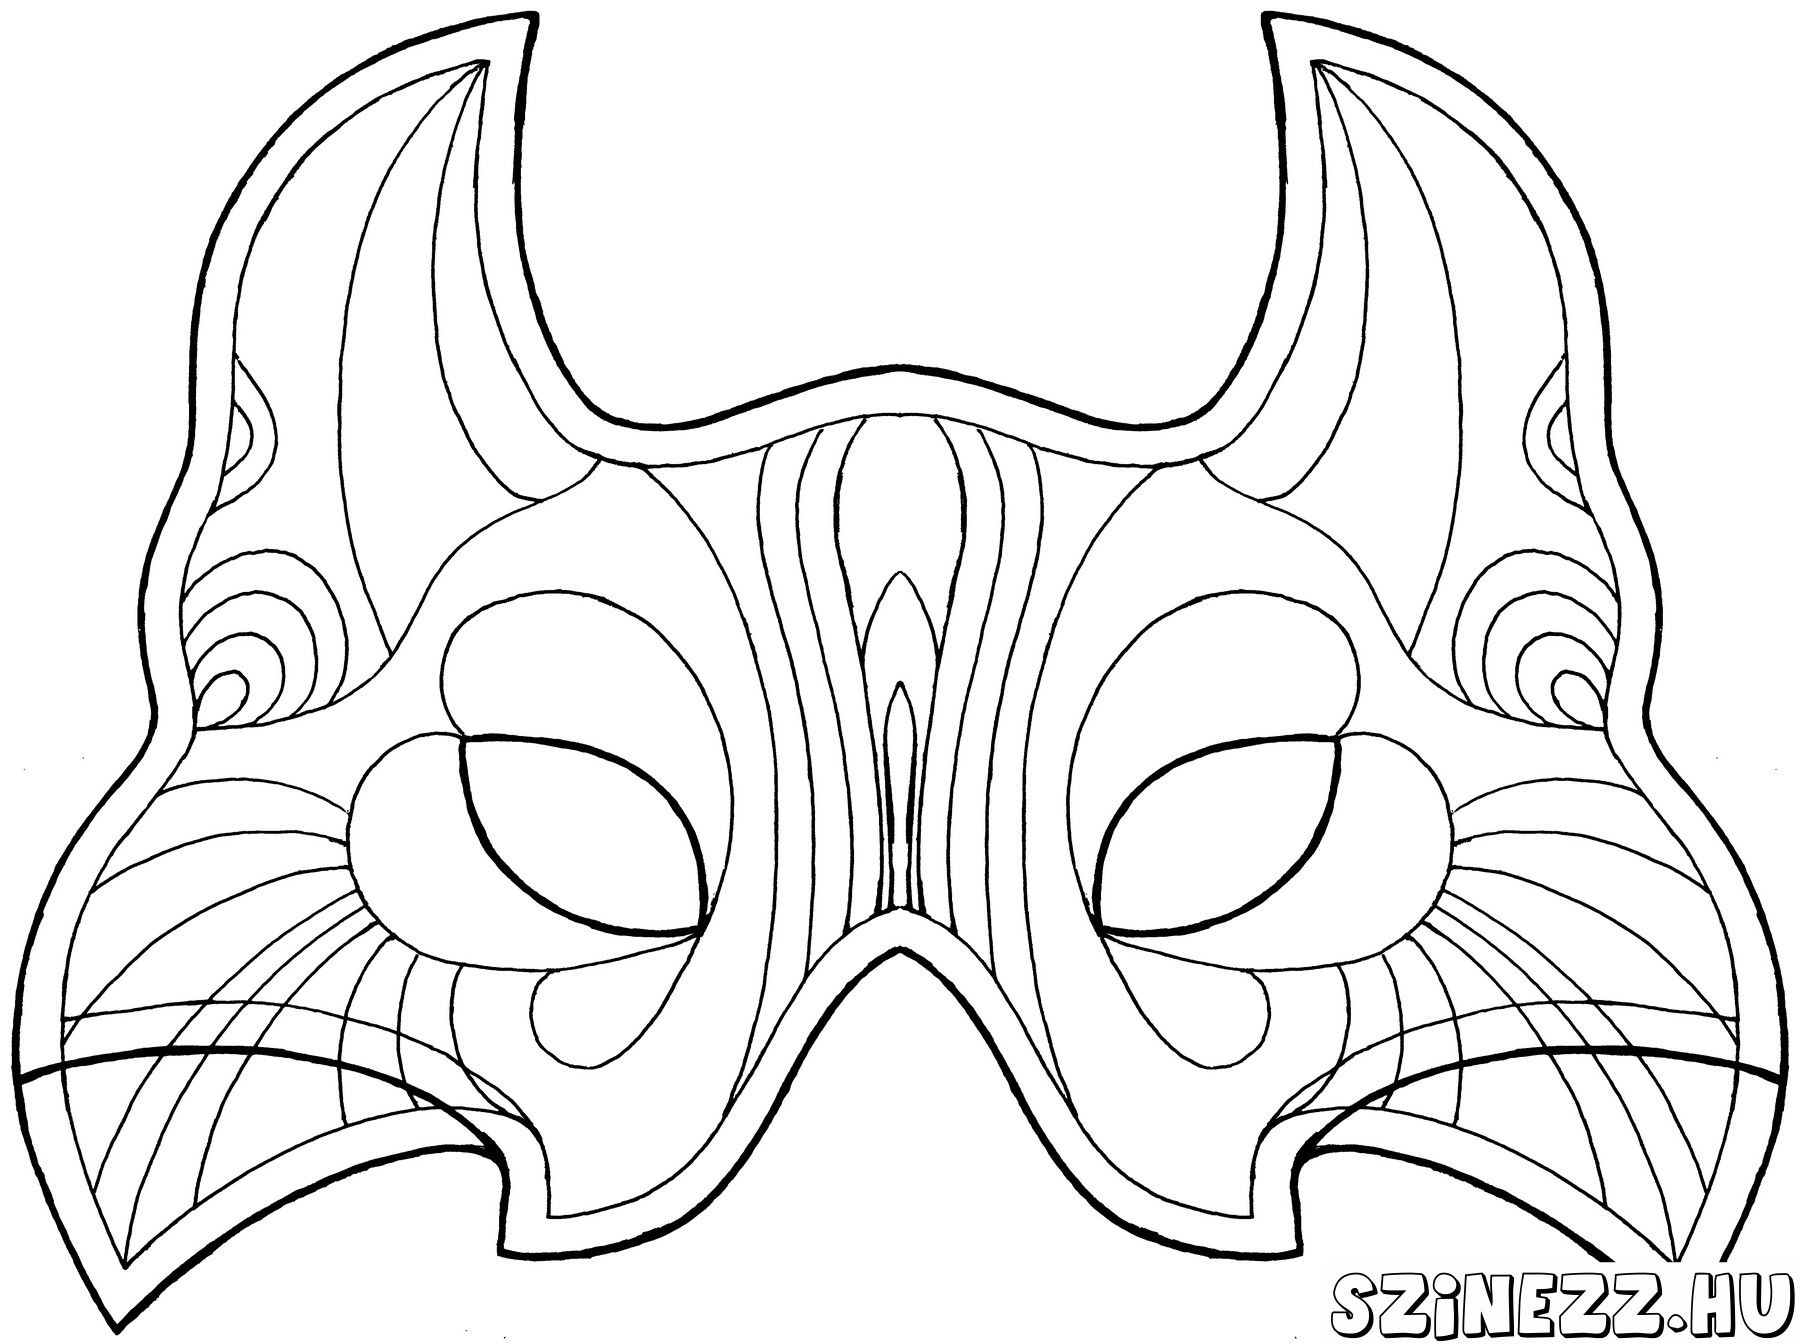 Uncategorized Printable Carnival Masks farsangi farsang cirkusz carnival coloring mask free online printable pages sheets for kids get the latest co